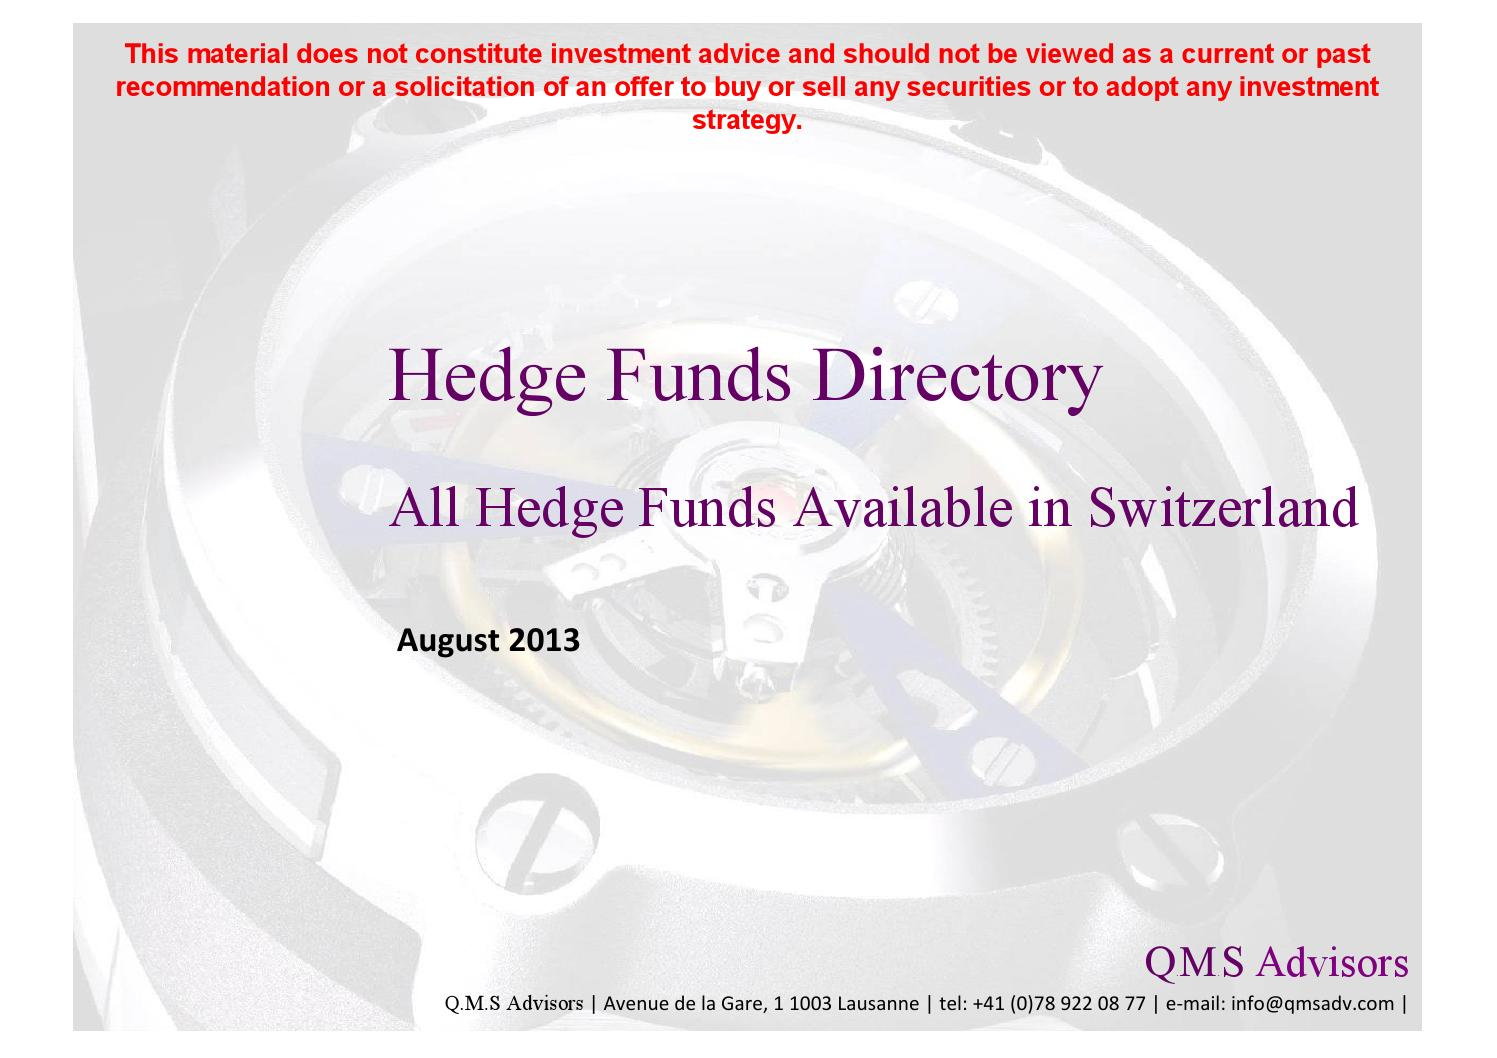 Investment management avadis anlagestiftung qian jiang amundi alternative investments